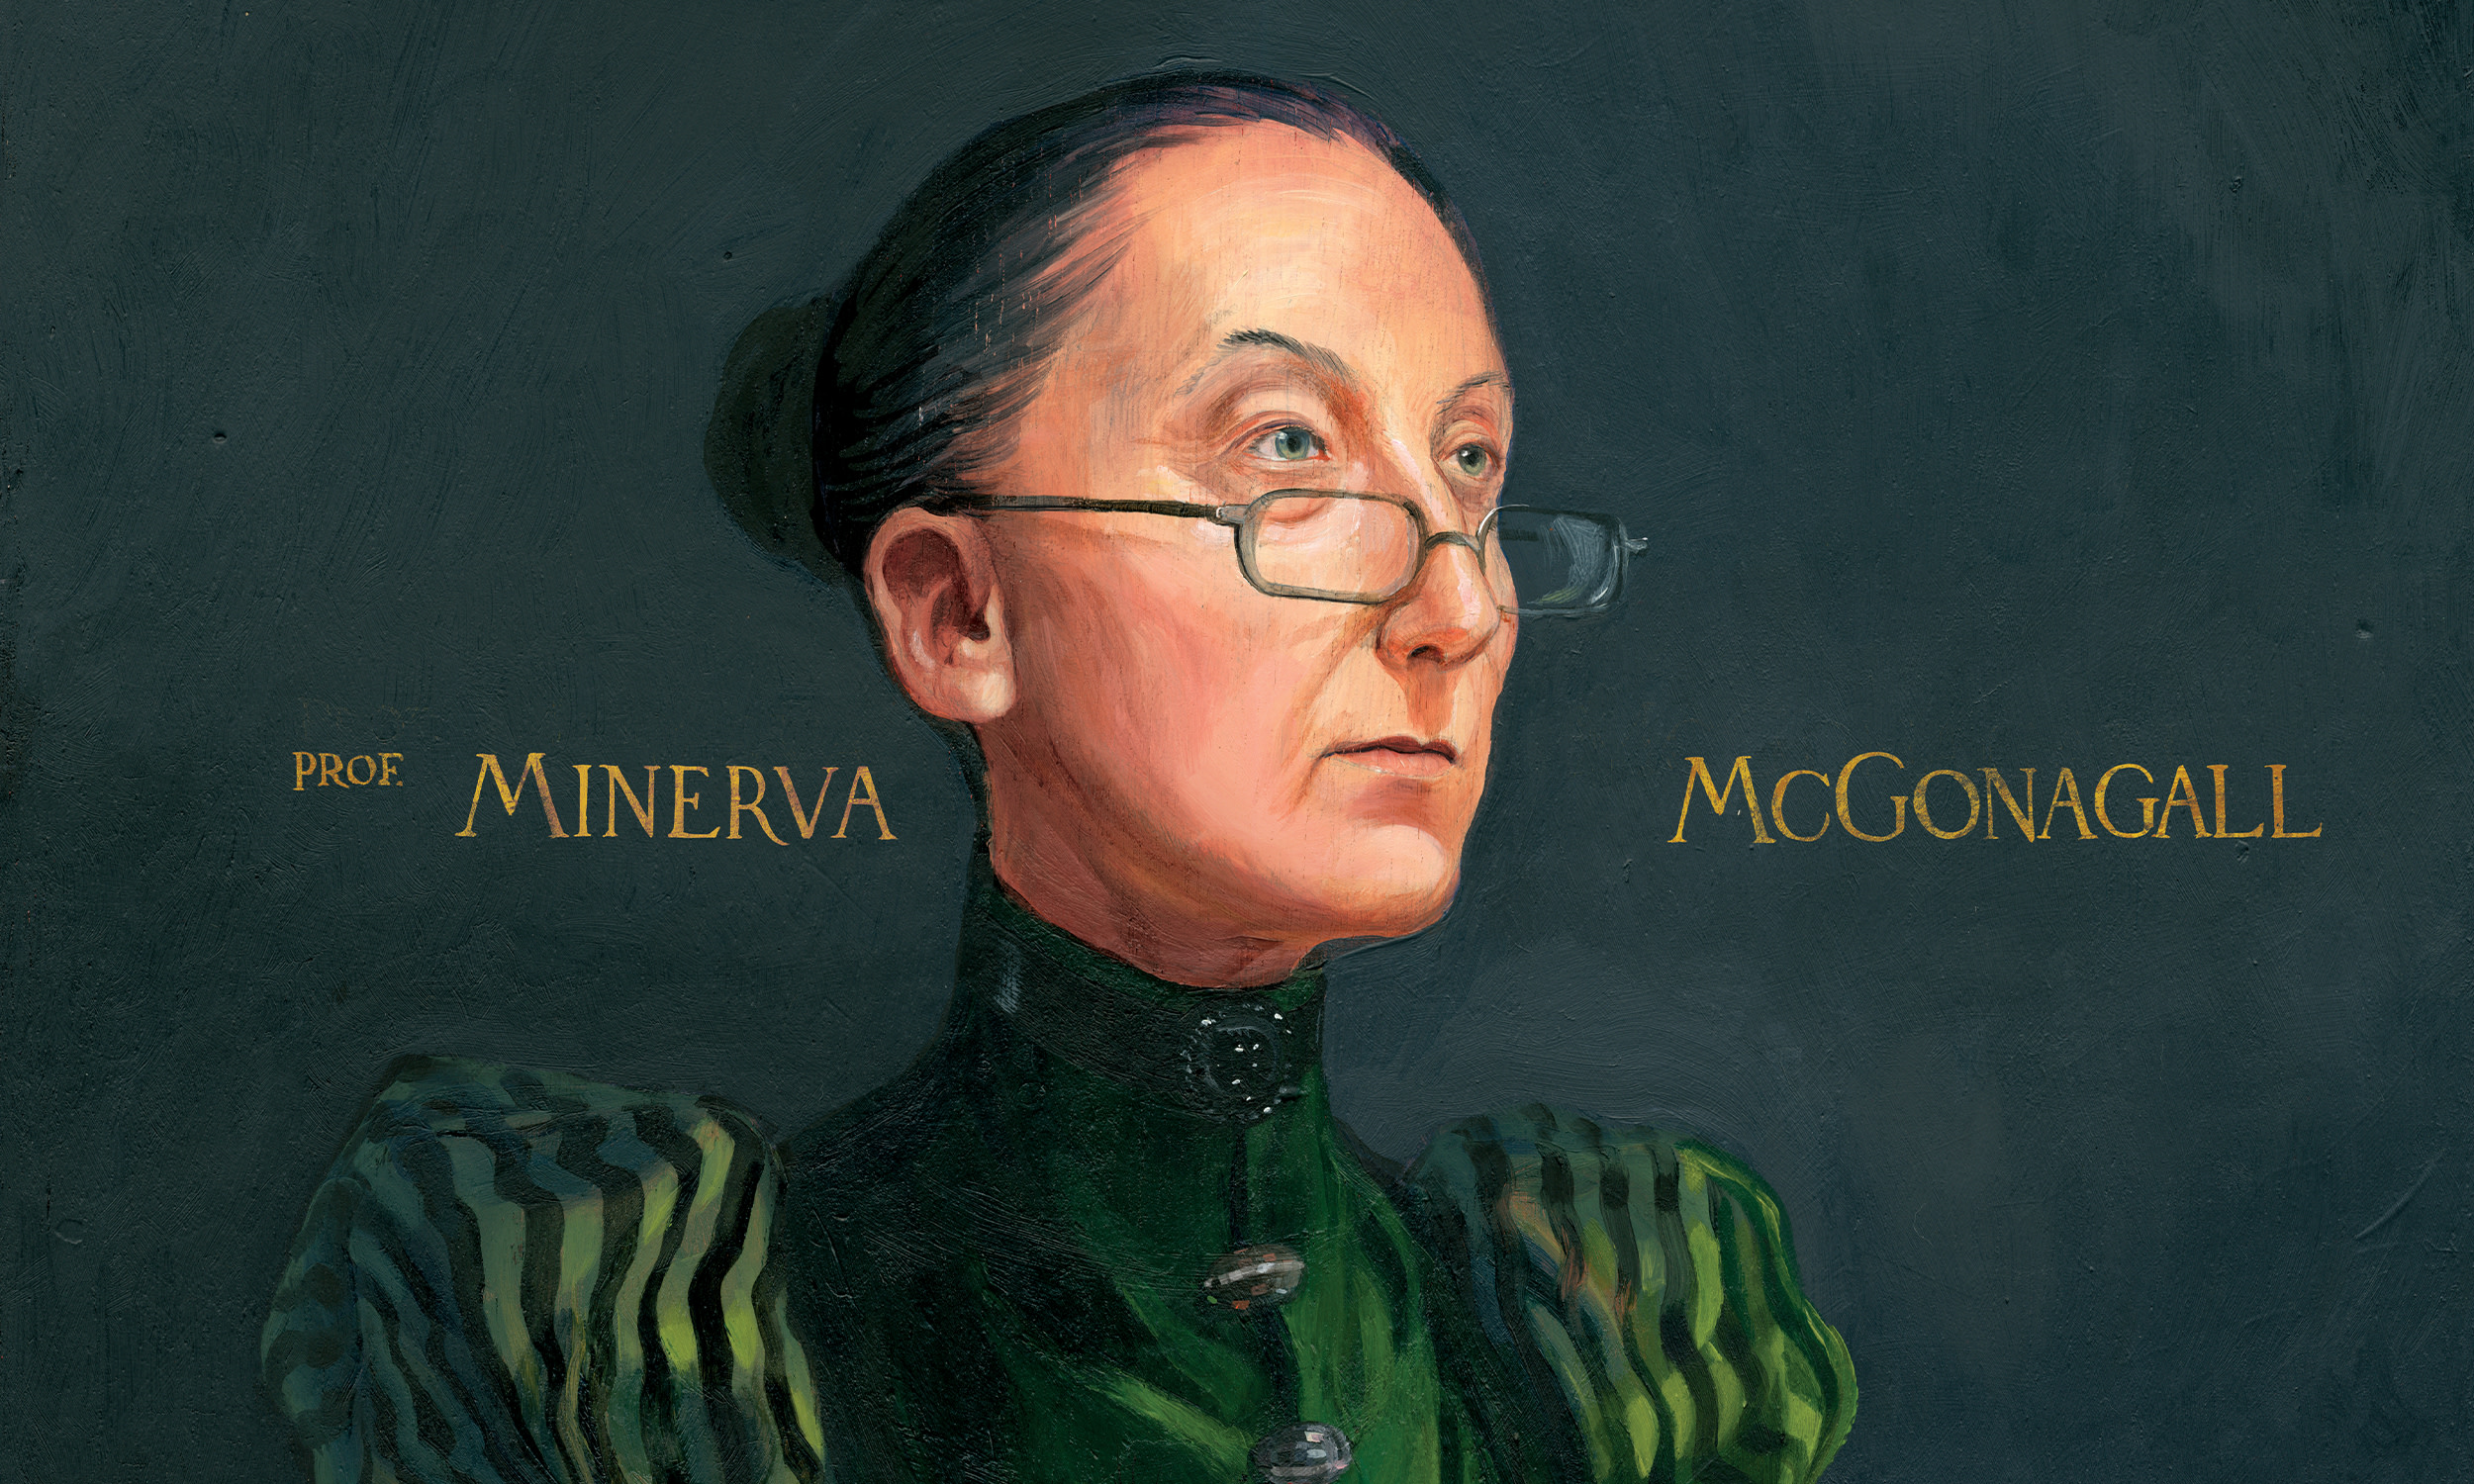 professor-mcgonagall-illustration-image